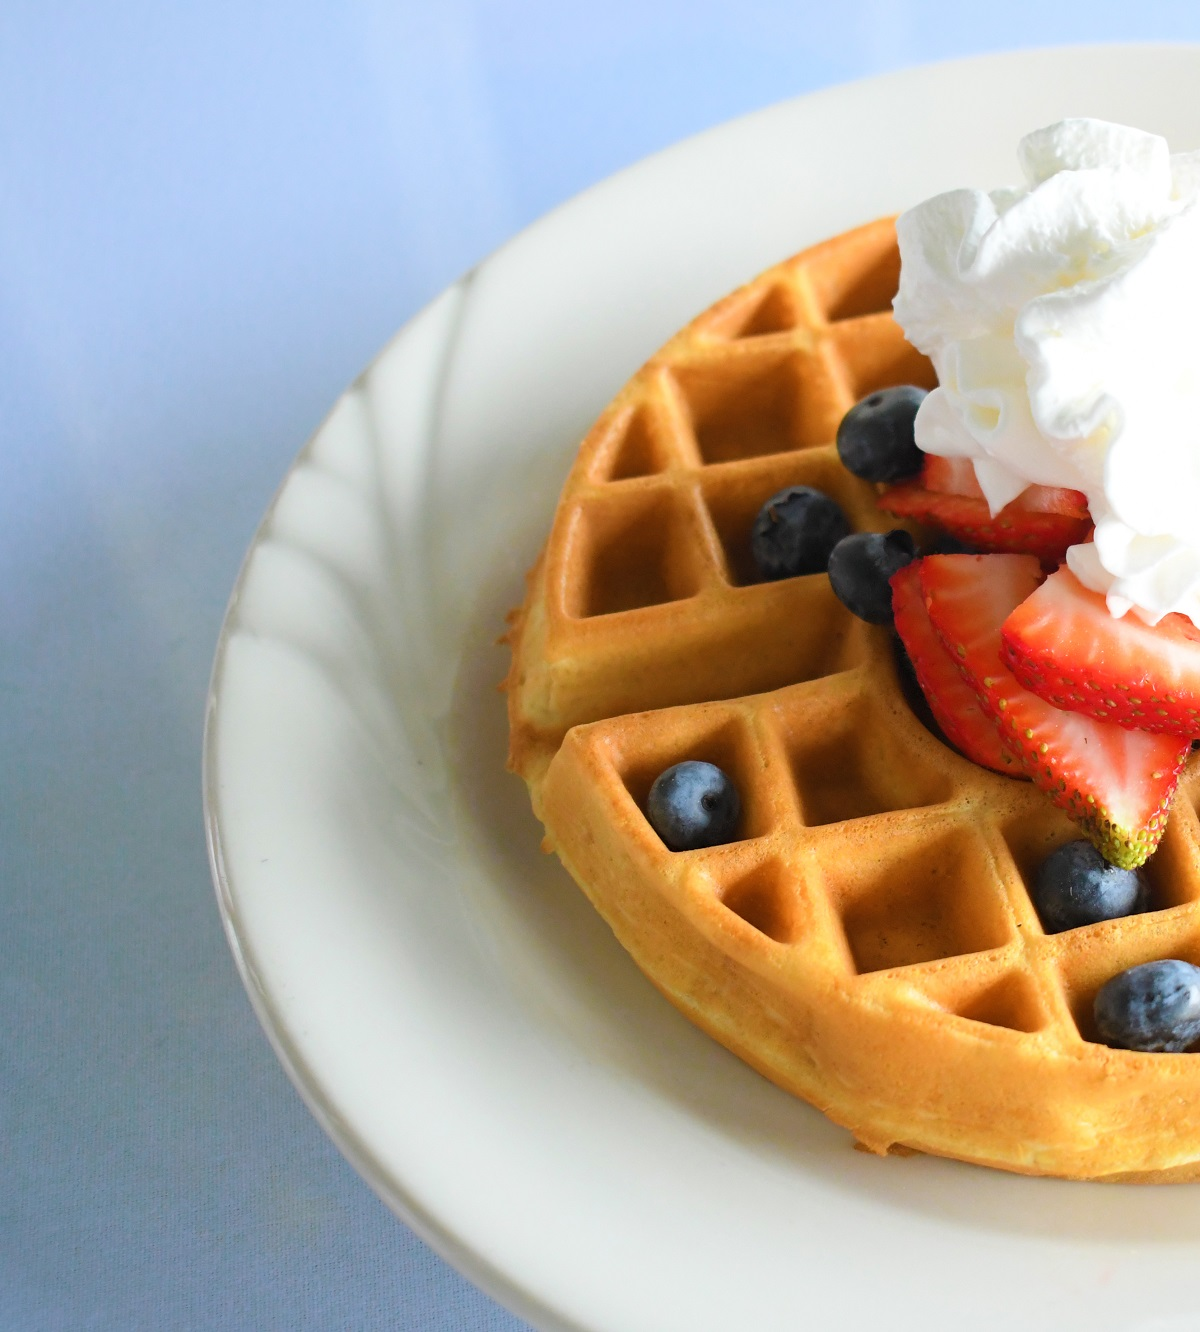 waffle with whipped cream and fruit on top